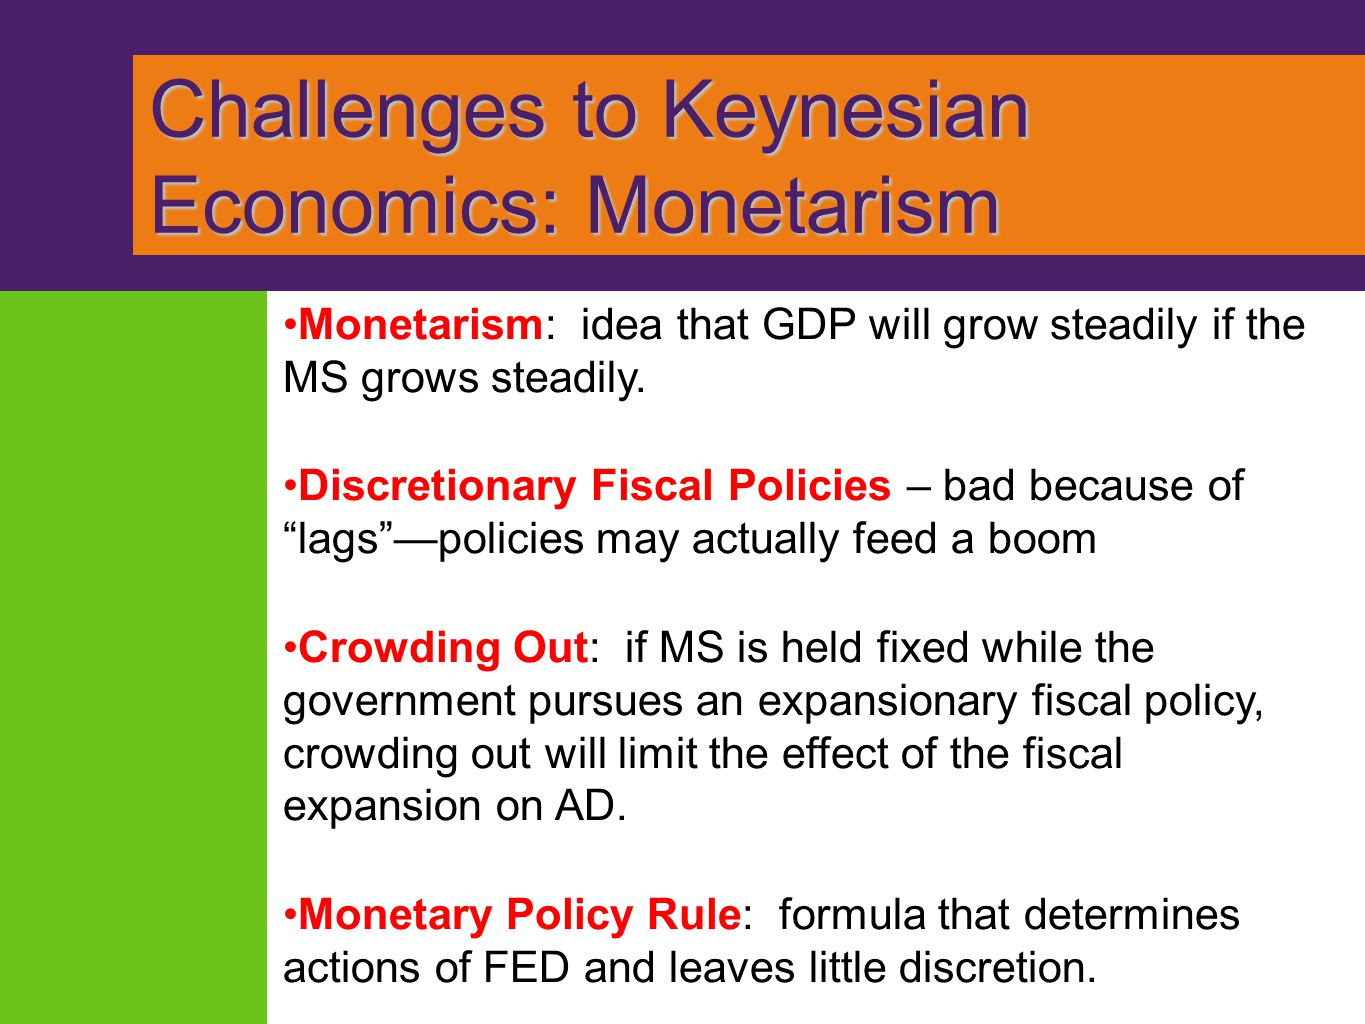 Challenges to Keynesian Economics: Monetarism Challenges to Keynesian Economics: Monetarism Monetarism: idea that GDP will grow steadily if the MS gro